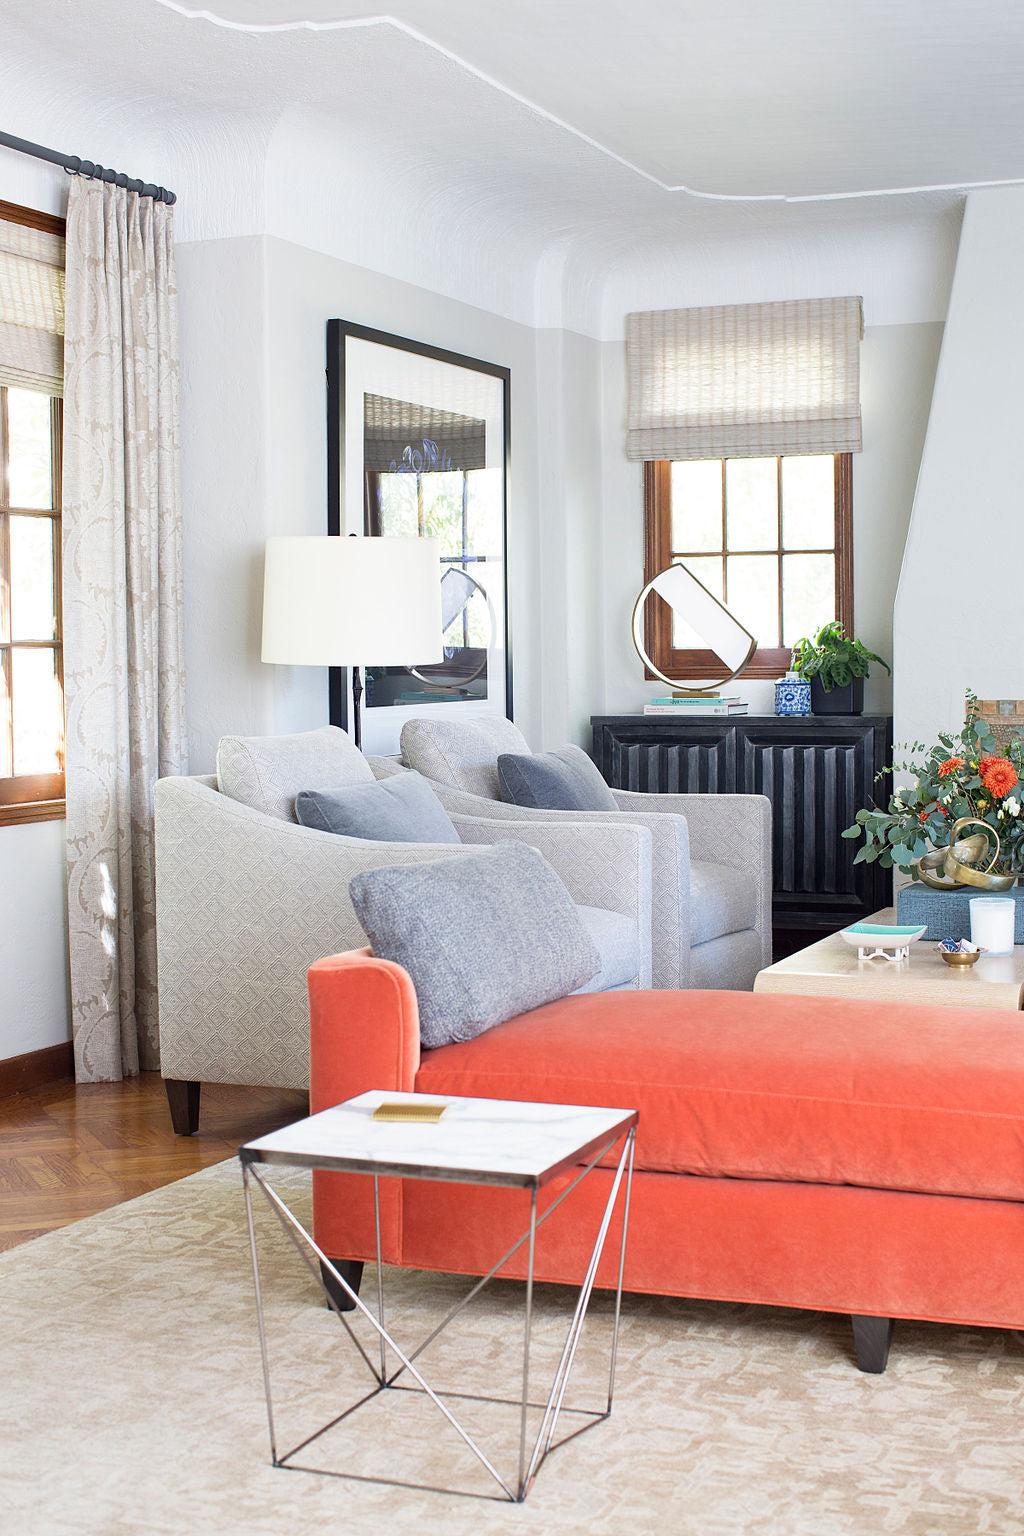 interior featuring two grey lounge chairs and salmon colored day bed